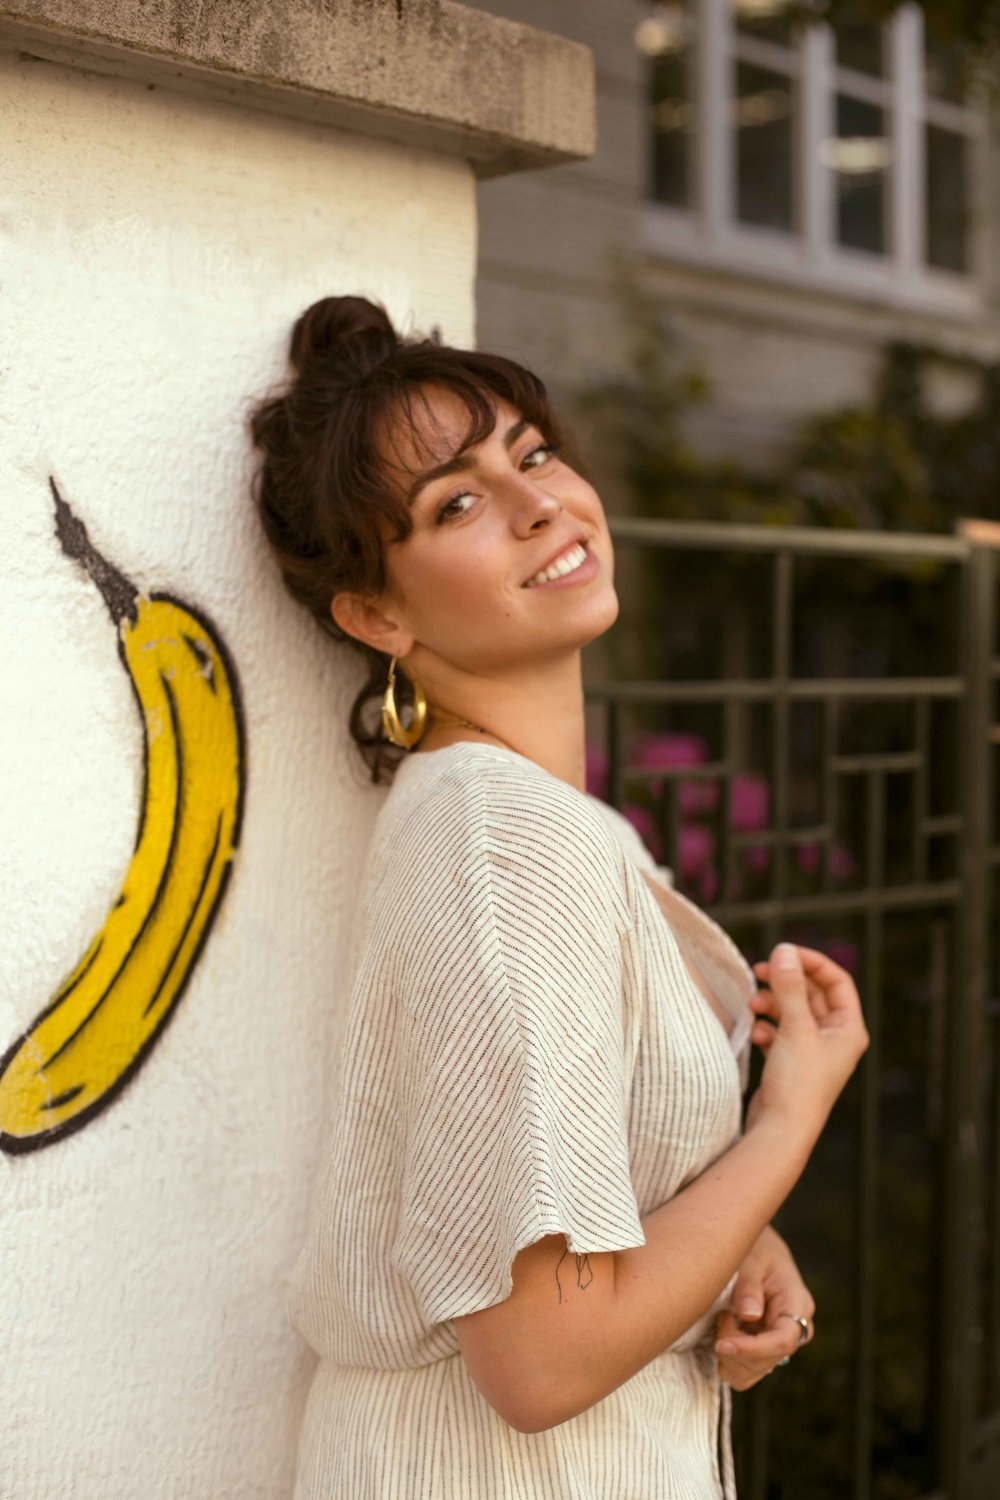 All across the city you can find this banana graffited on walls, buildings, fences. It's become a cultural icon of sorts.